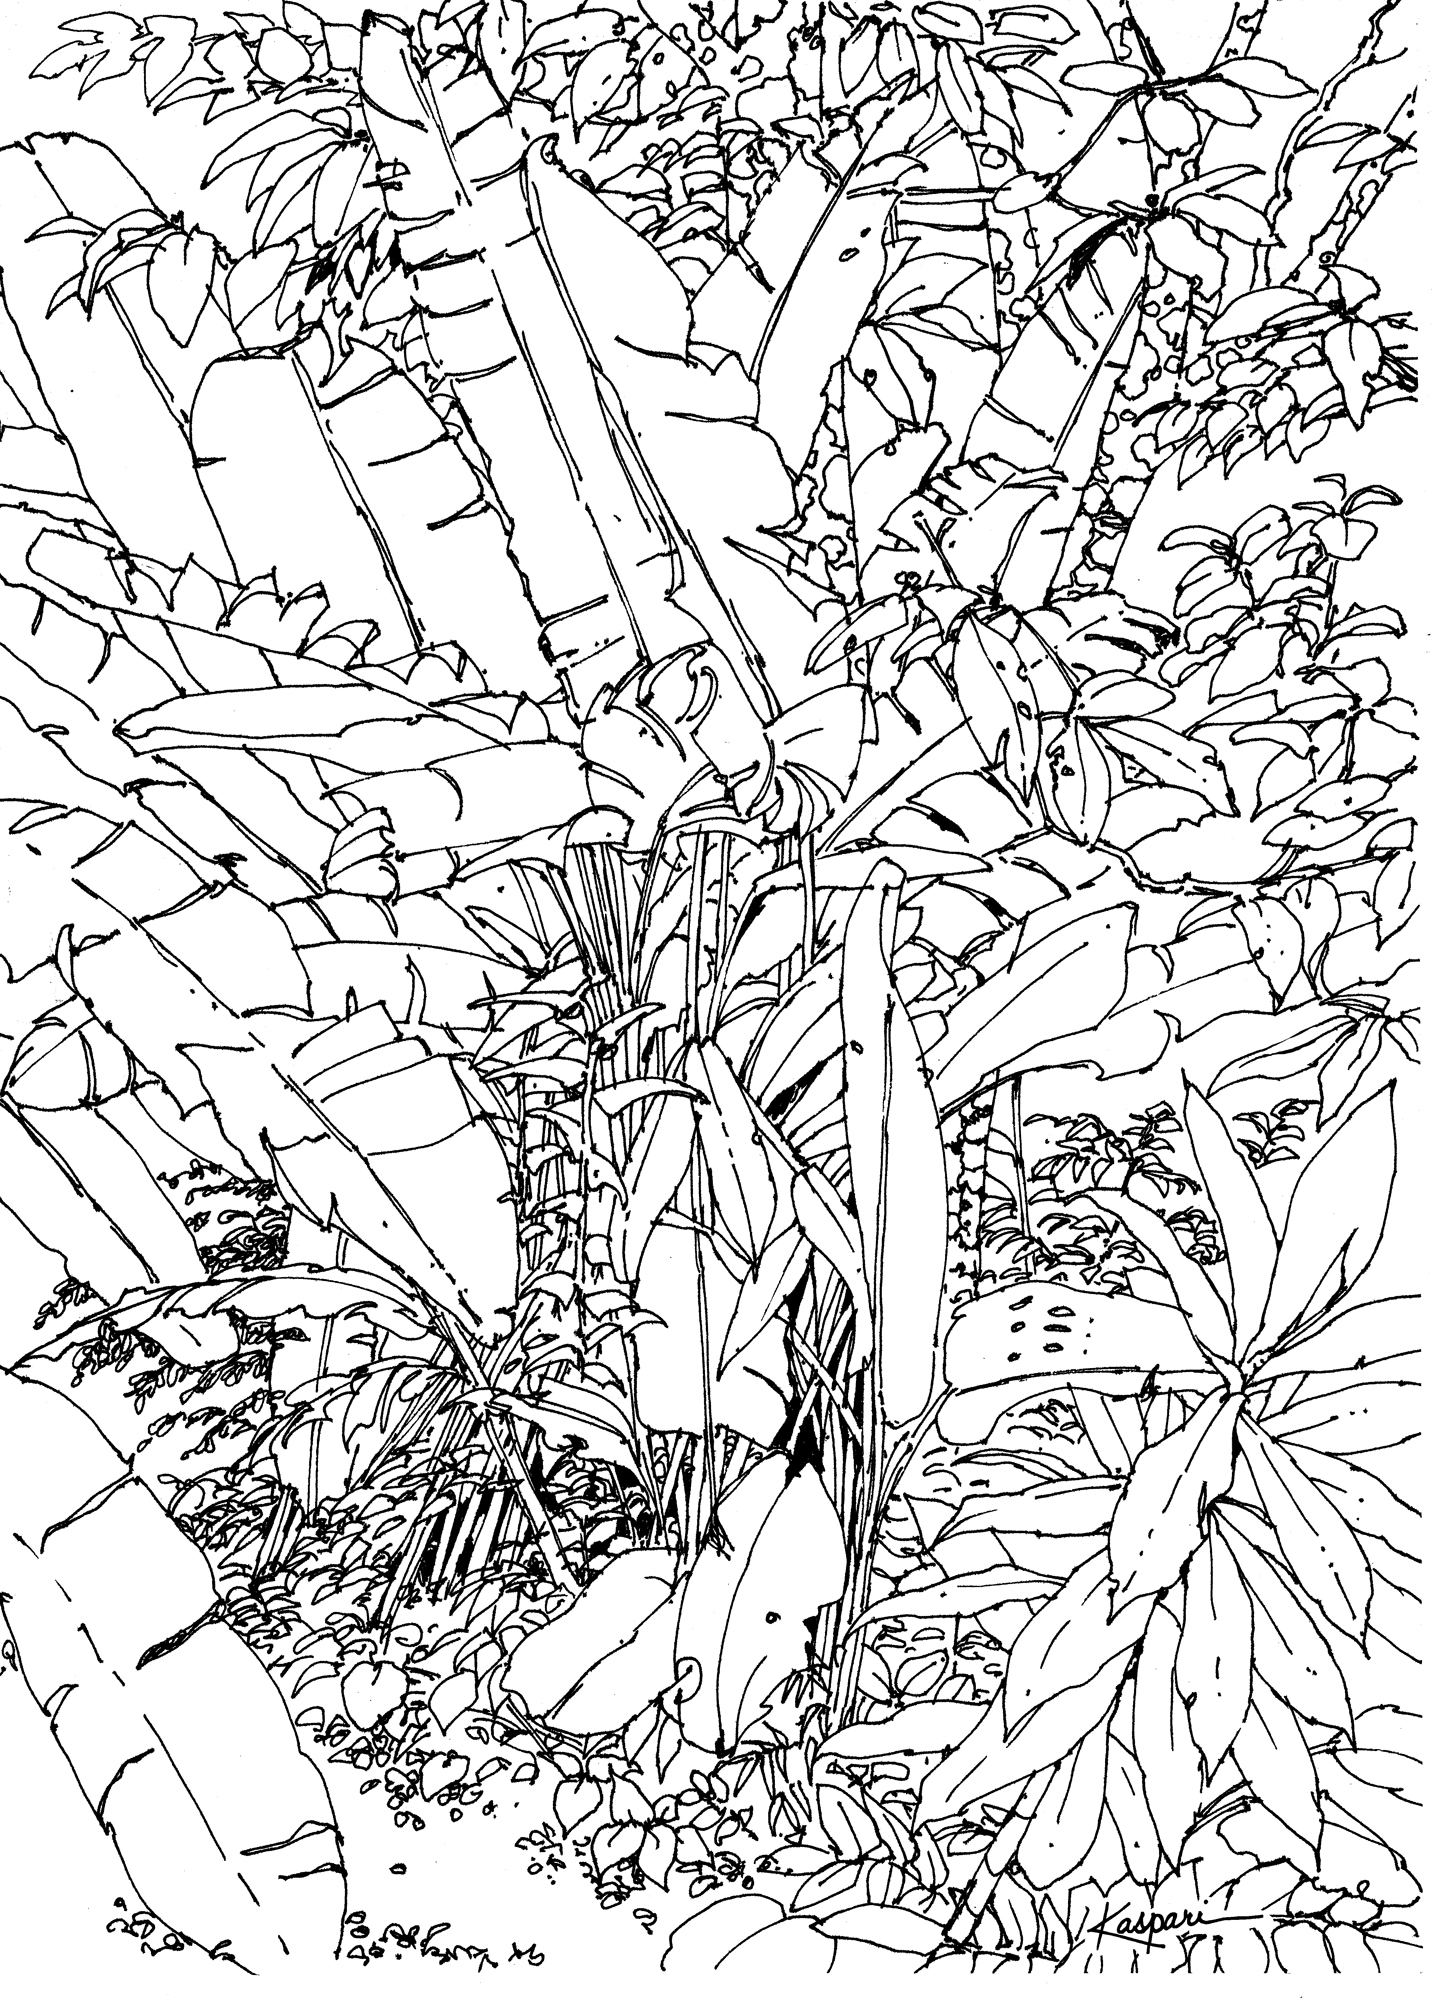 Plein Air Pen and Ink Drawings – Drawing The Motmot